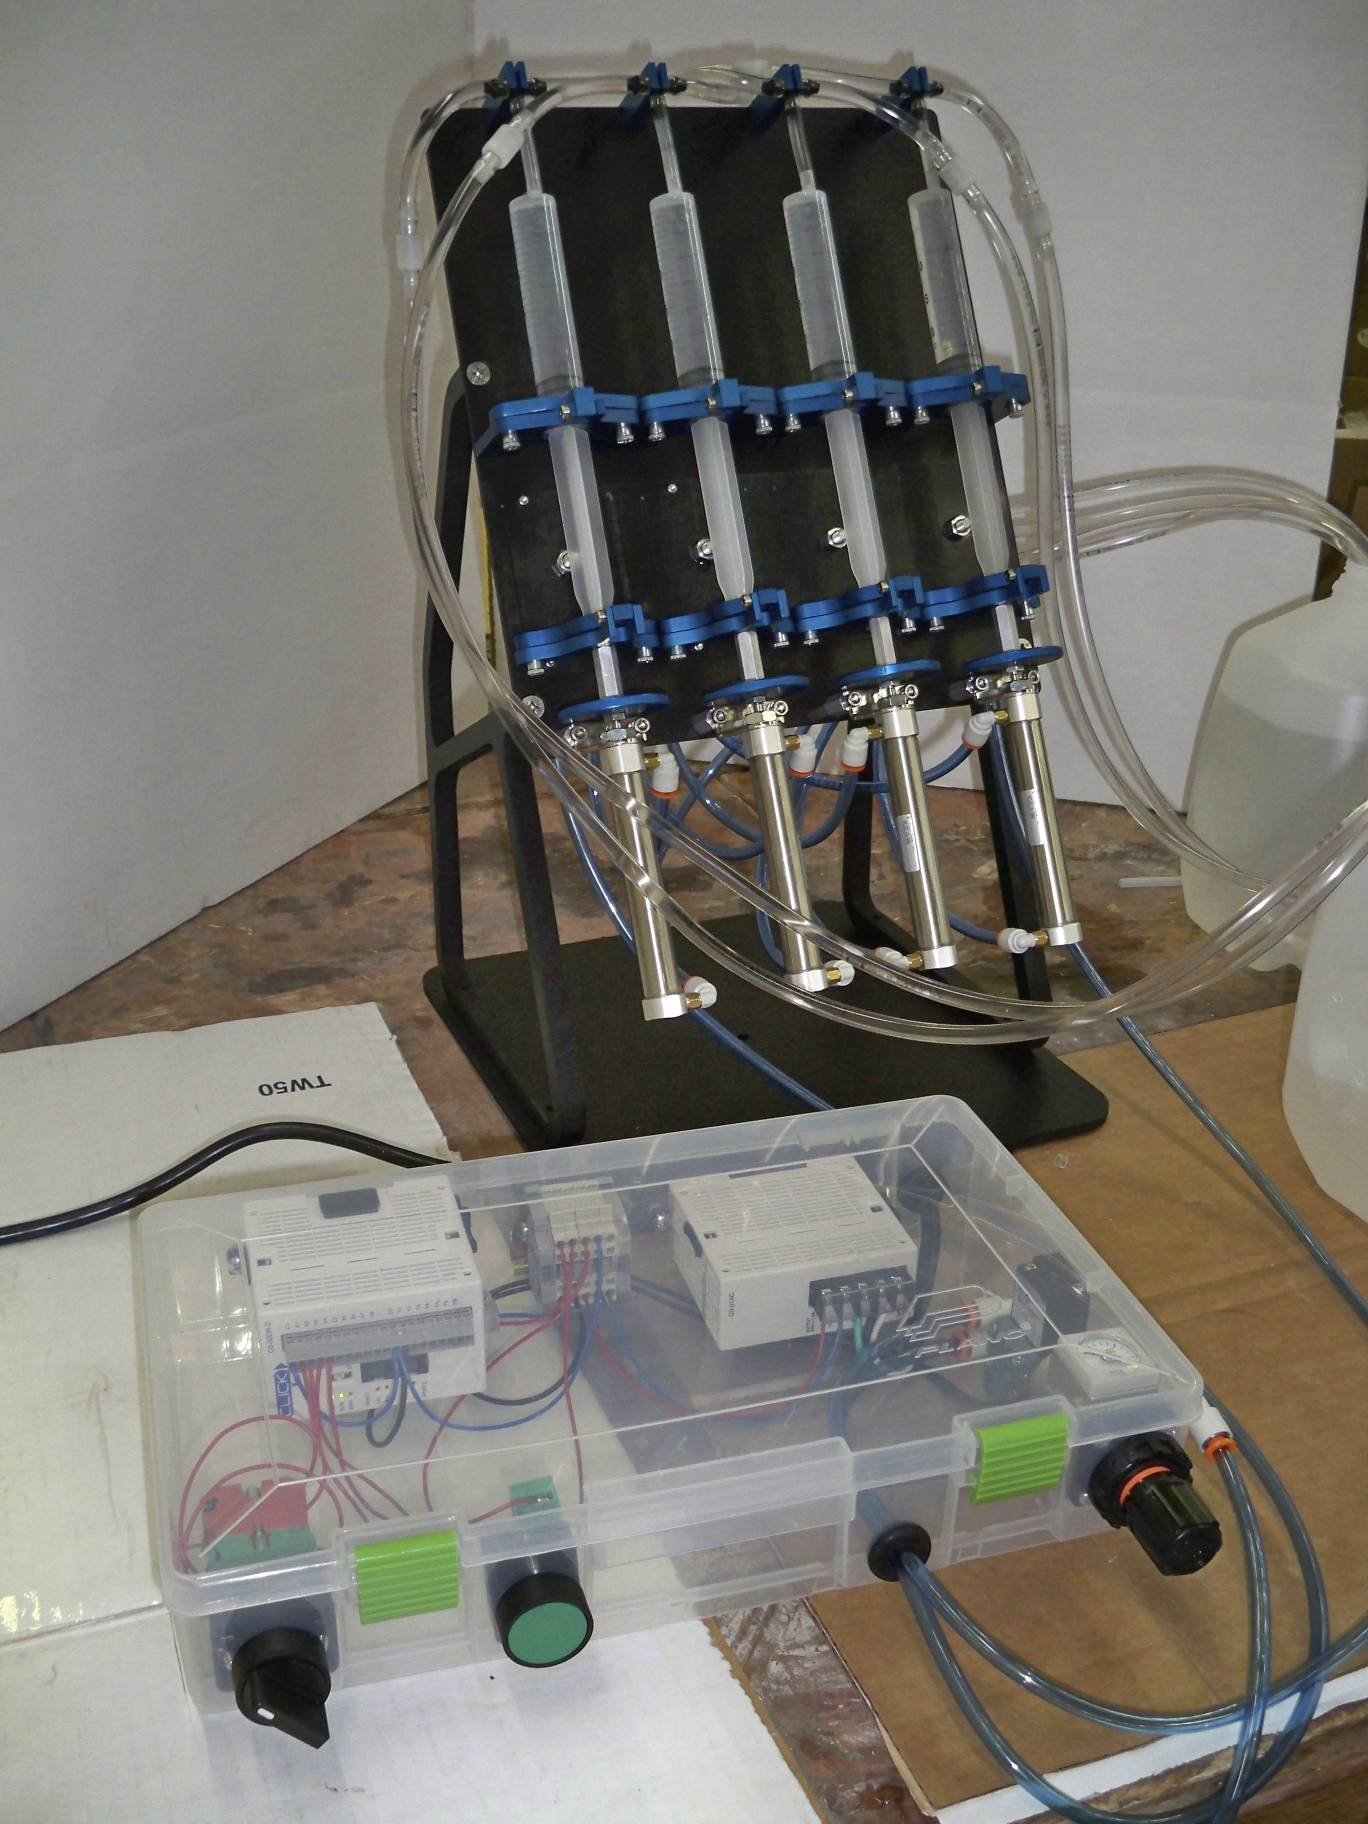 4-Channel Syringe Dispenser